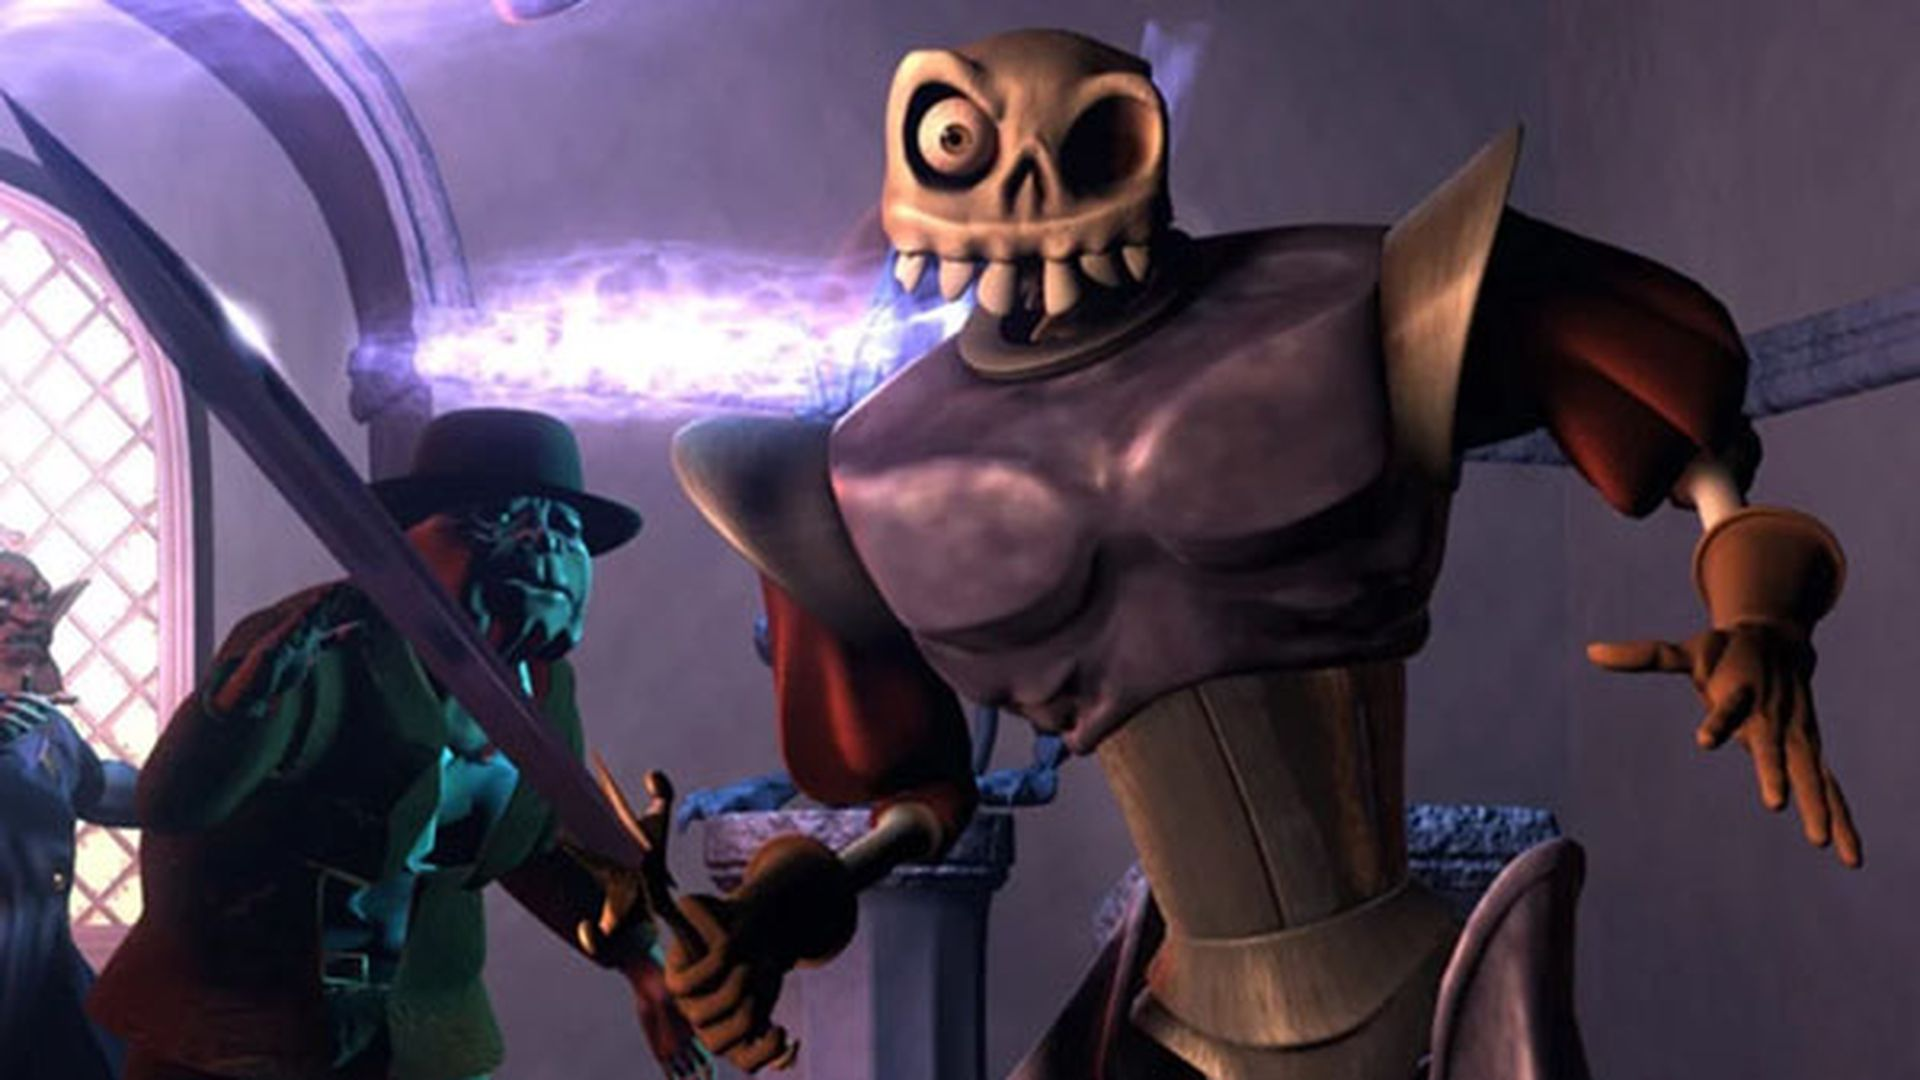 Medievil launches on October 25, watch the new trailer